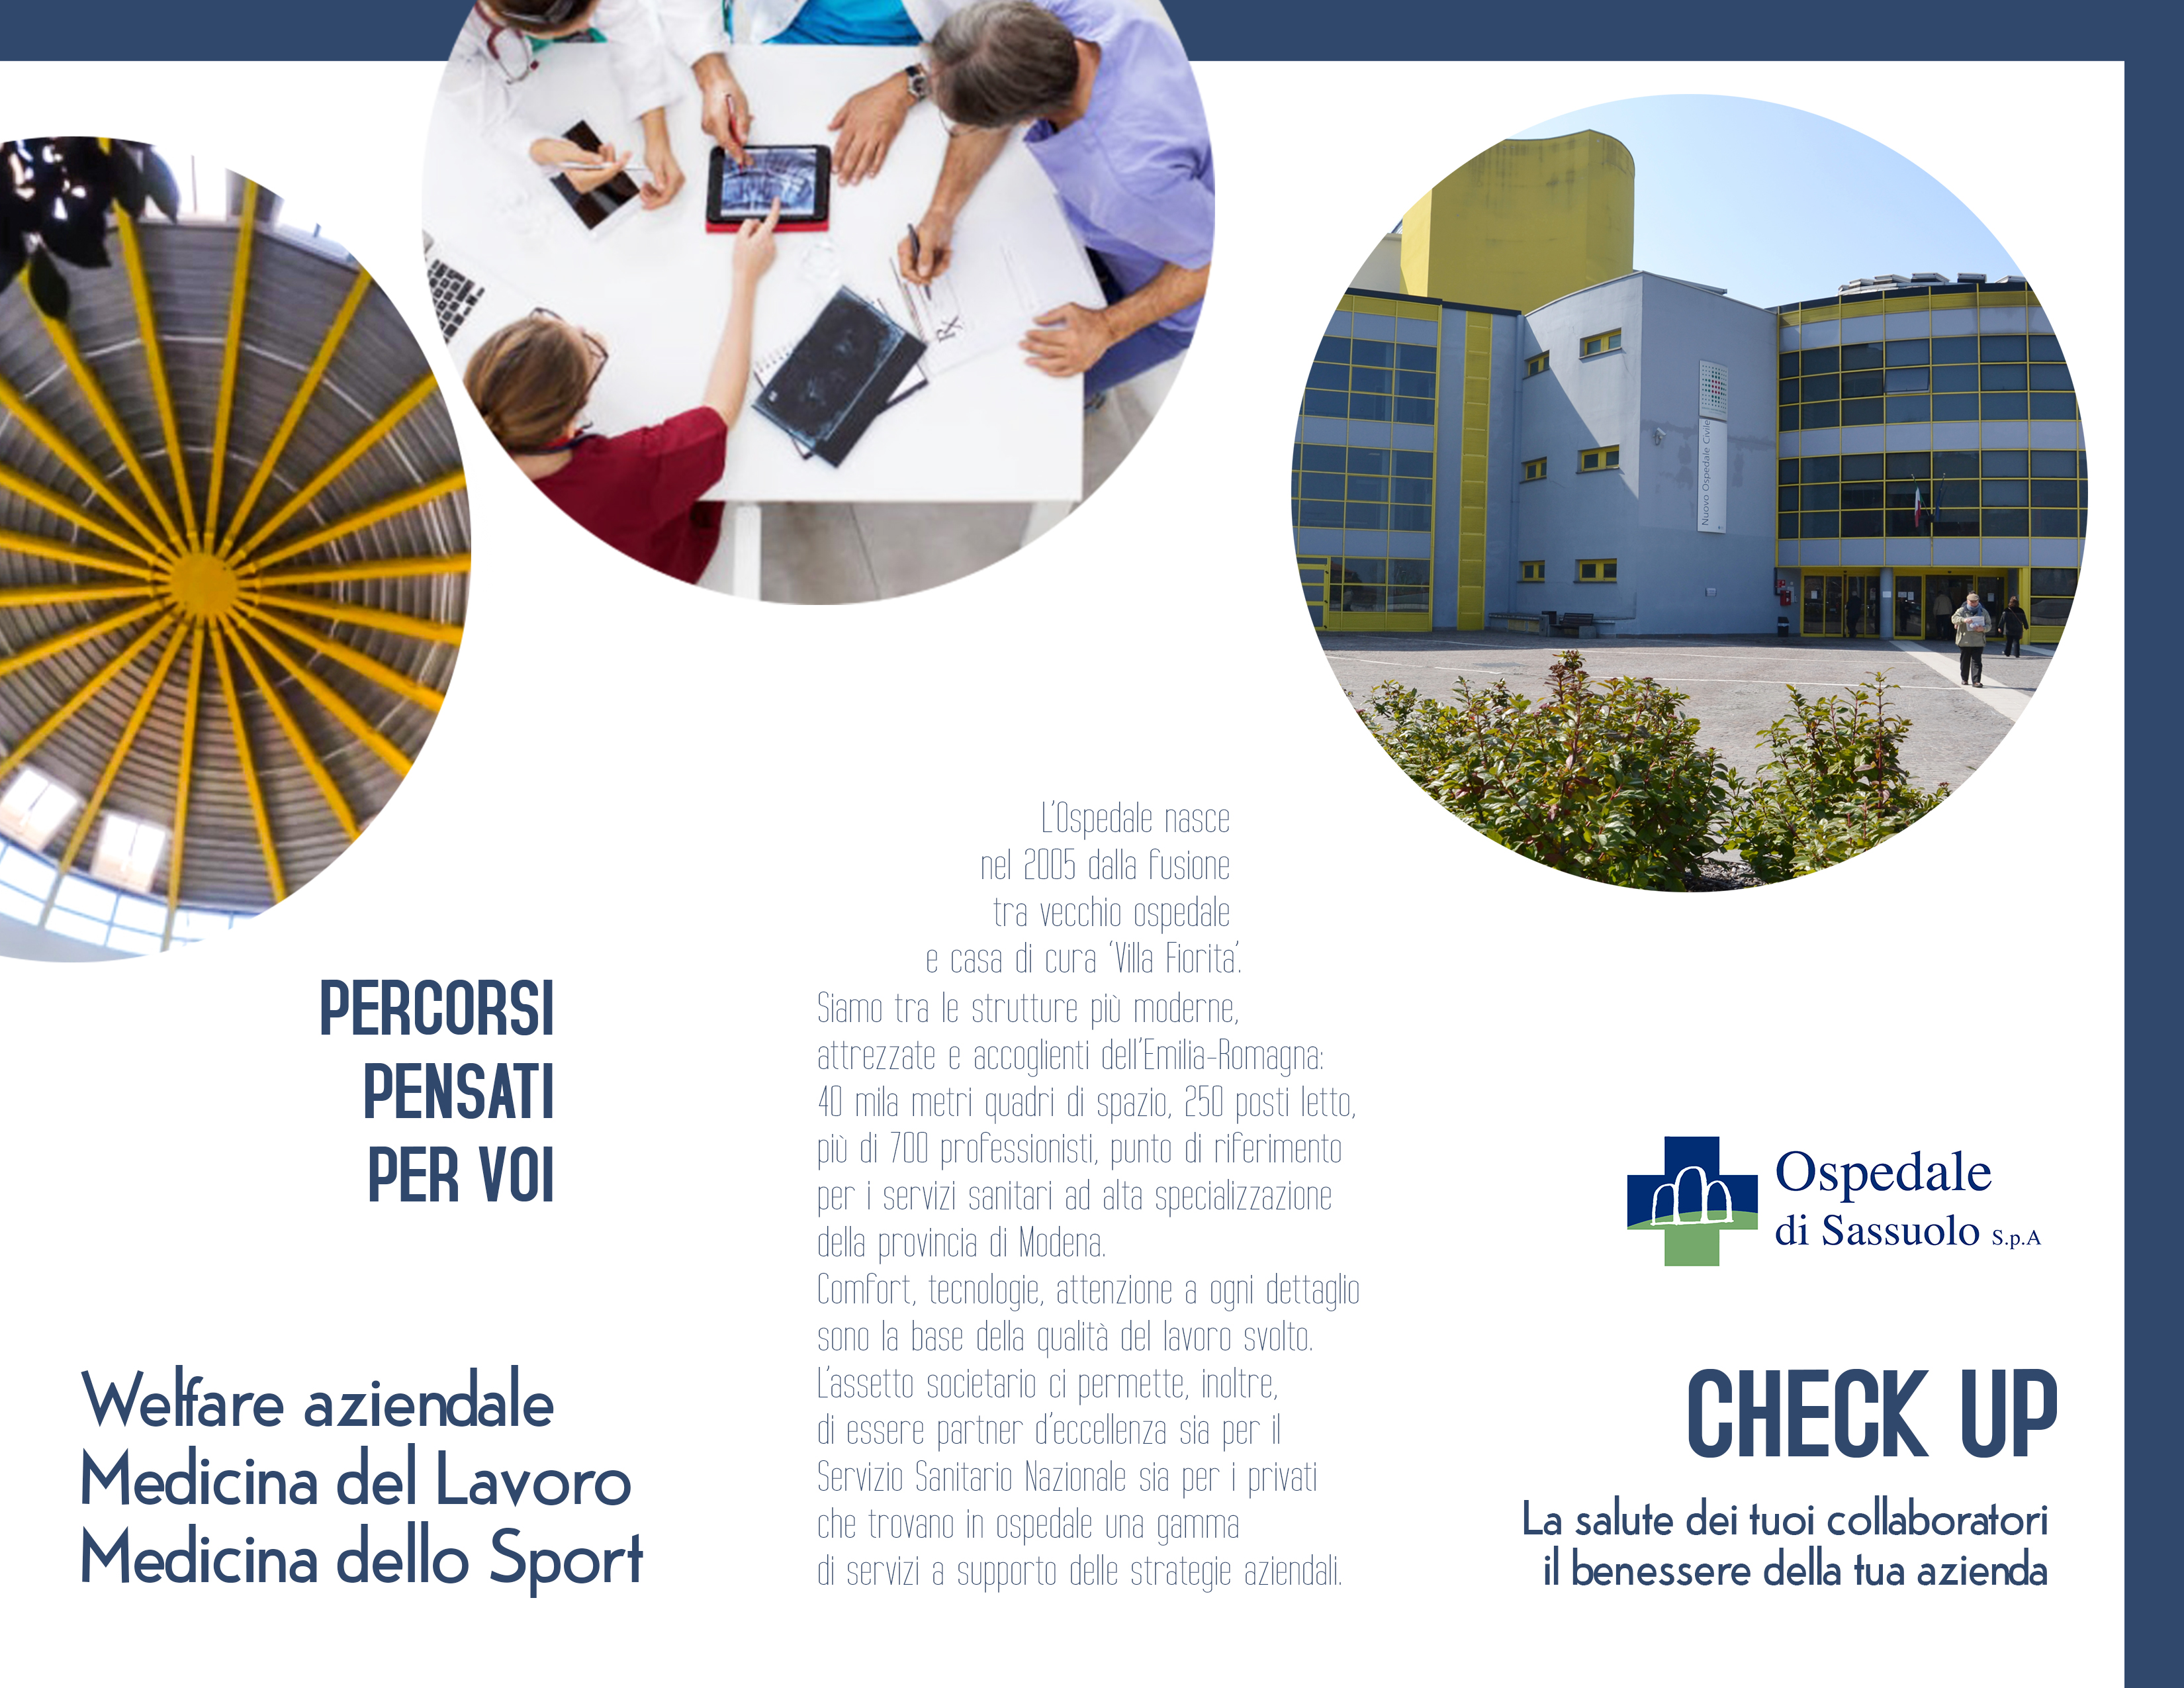 Check up (fronte)